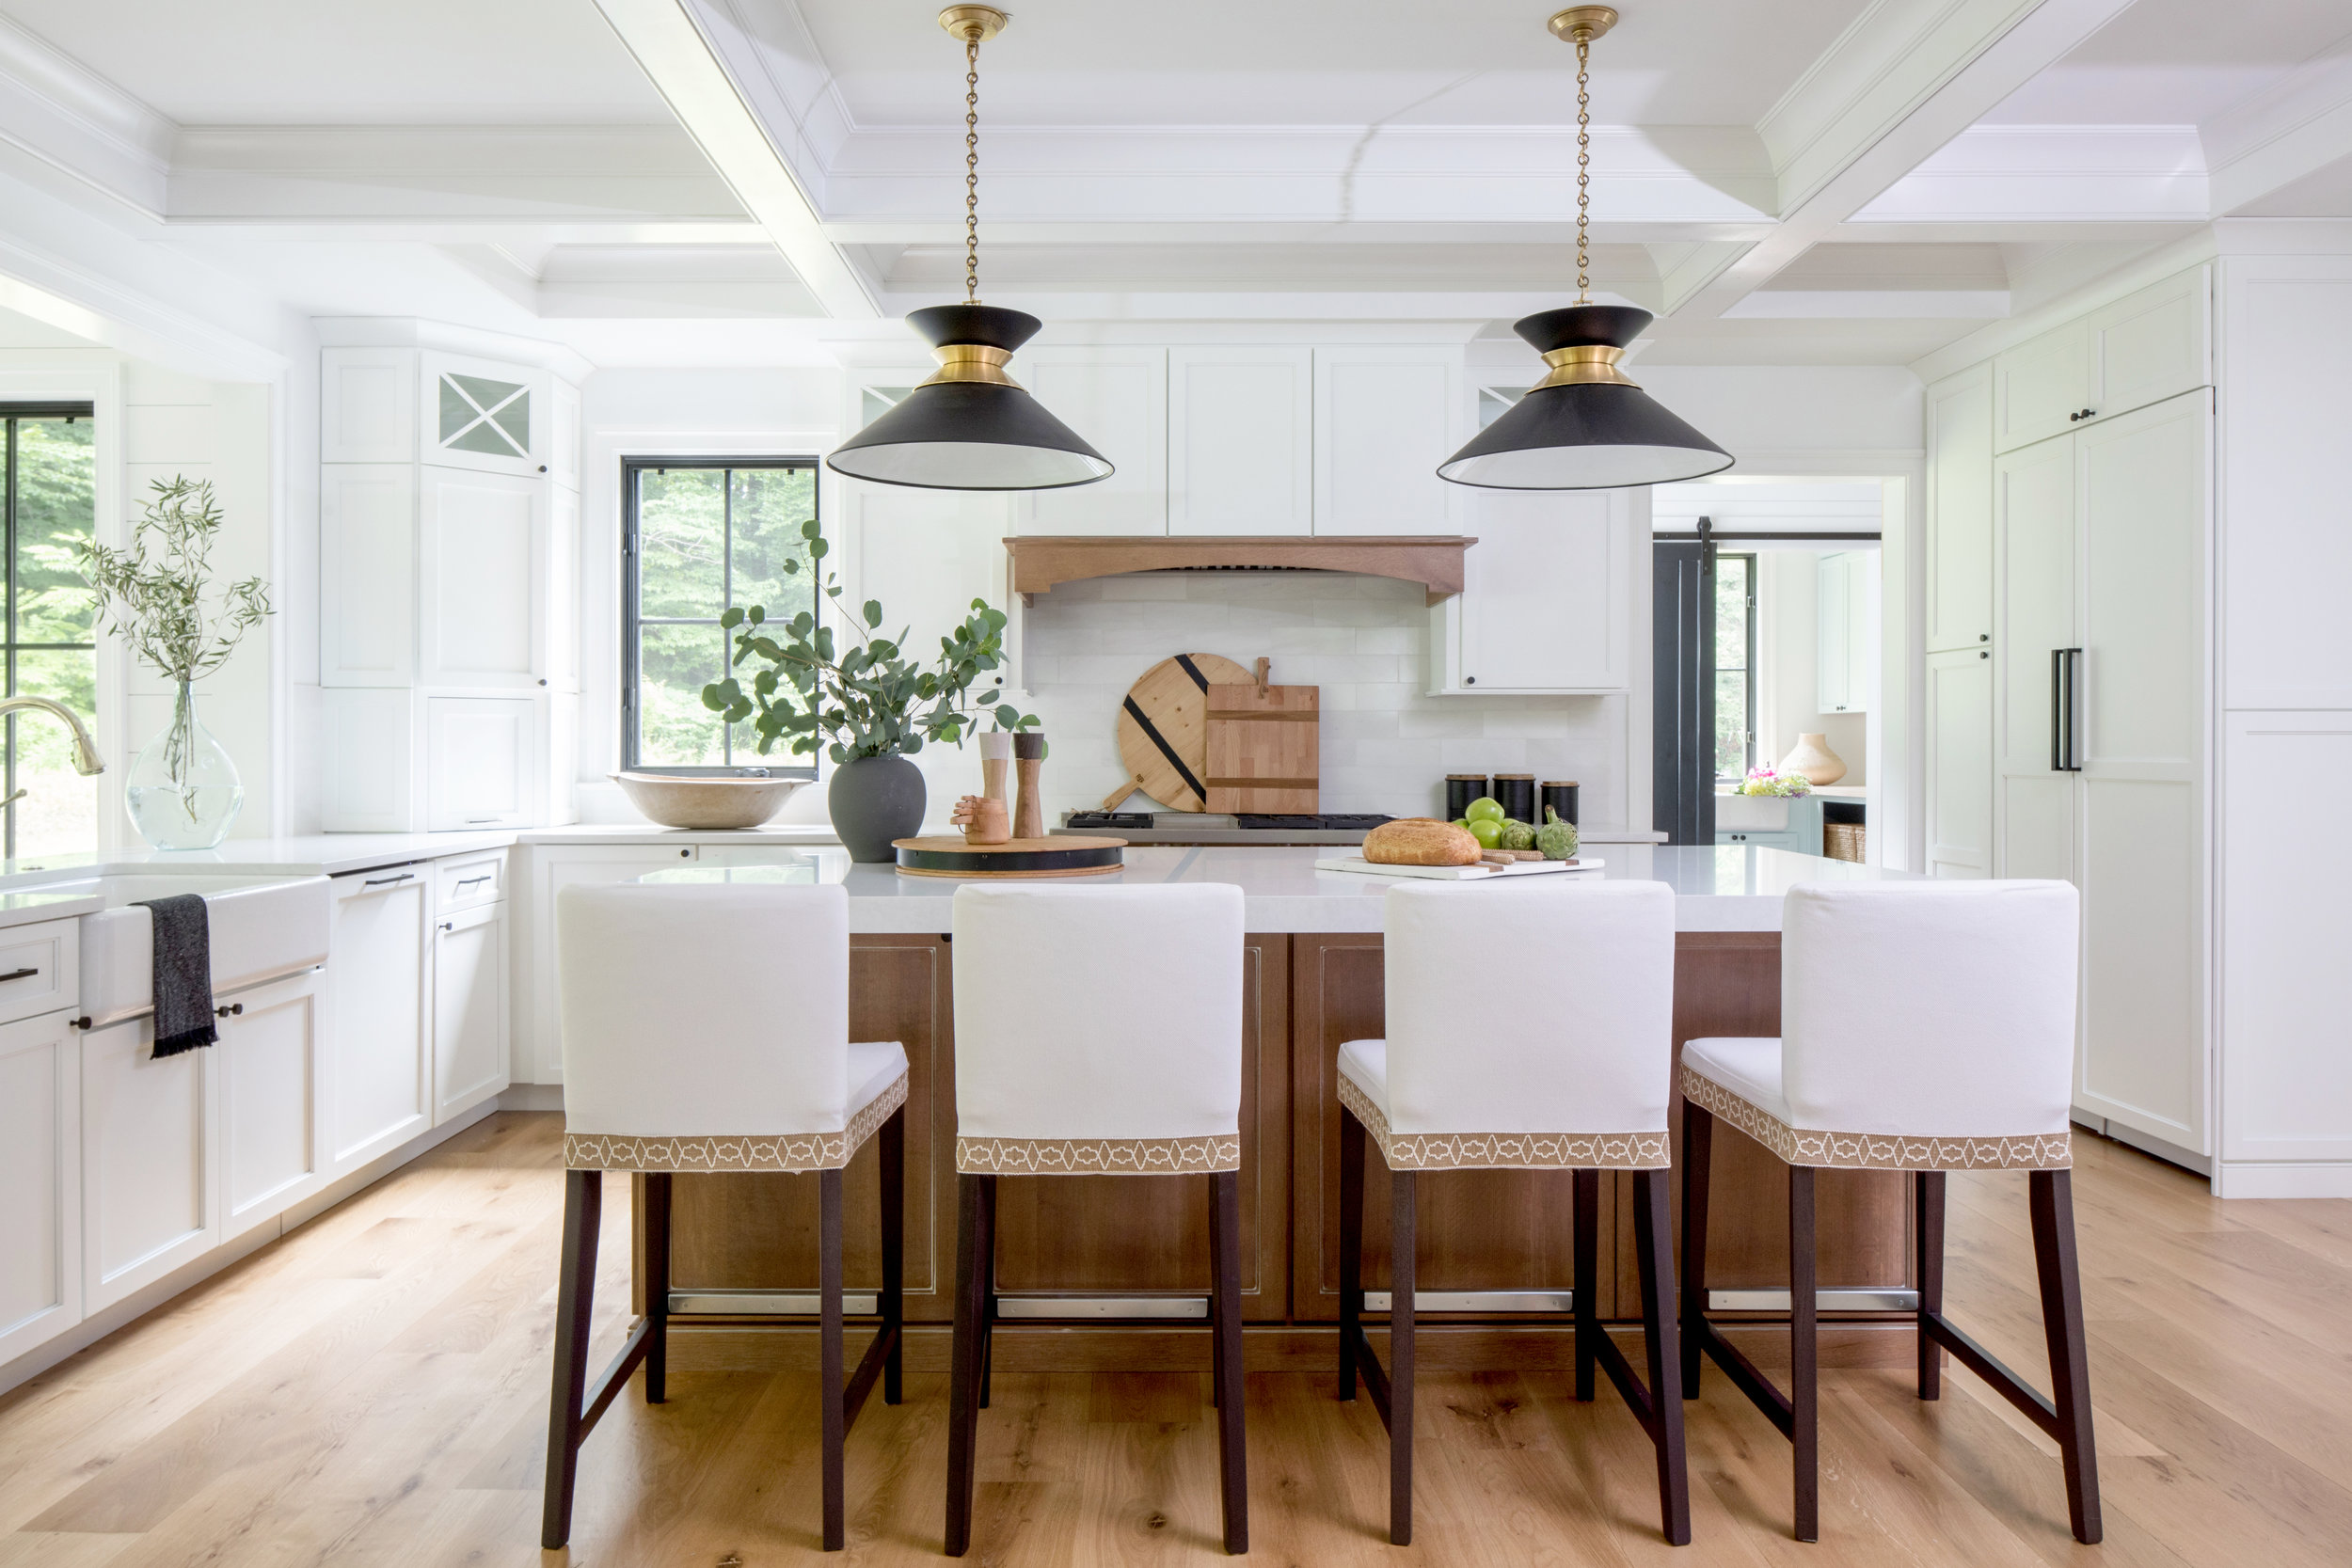 Kitchen Natural Wood Island White Cabinets Black Hardware Black Pendant Lights Modern Farmhouse Kitchen Black Windows Coffered Ceiling Stephanie Kraus Designs